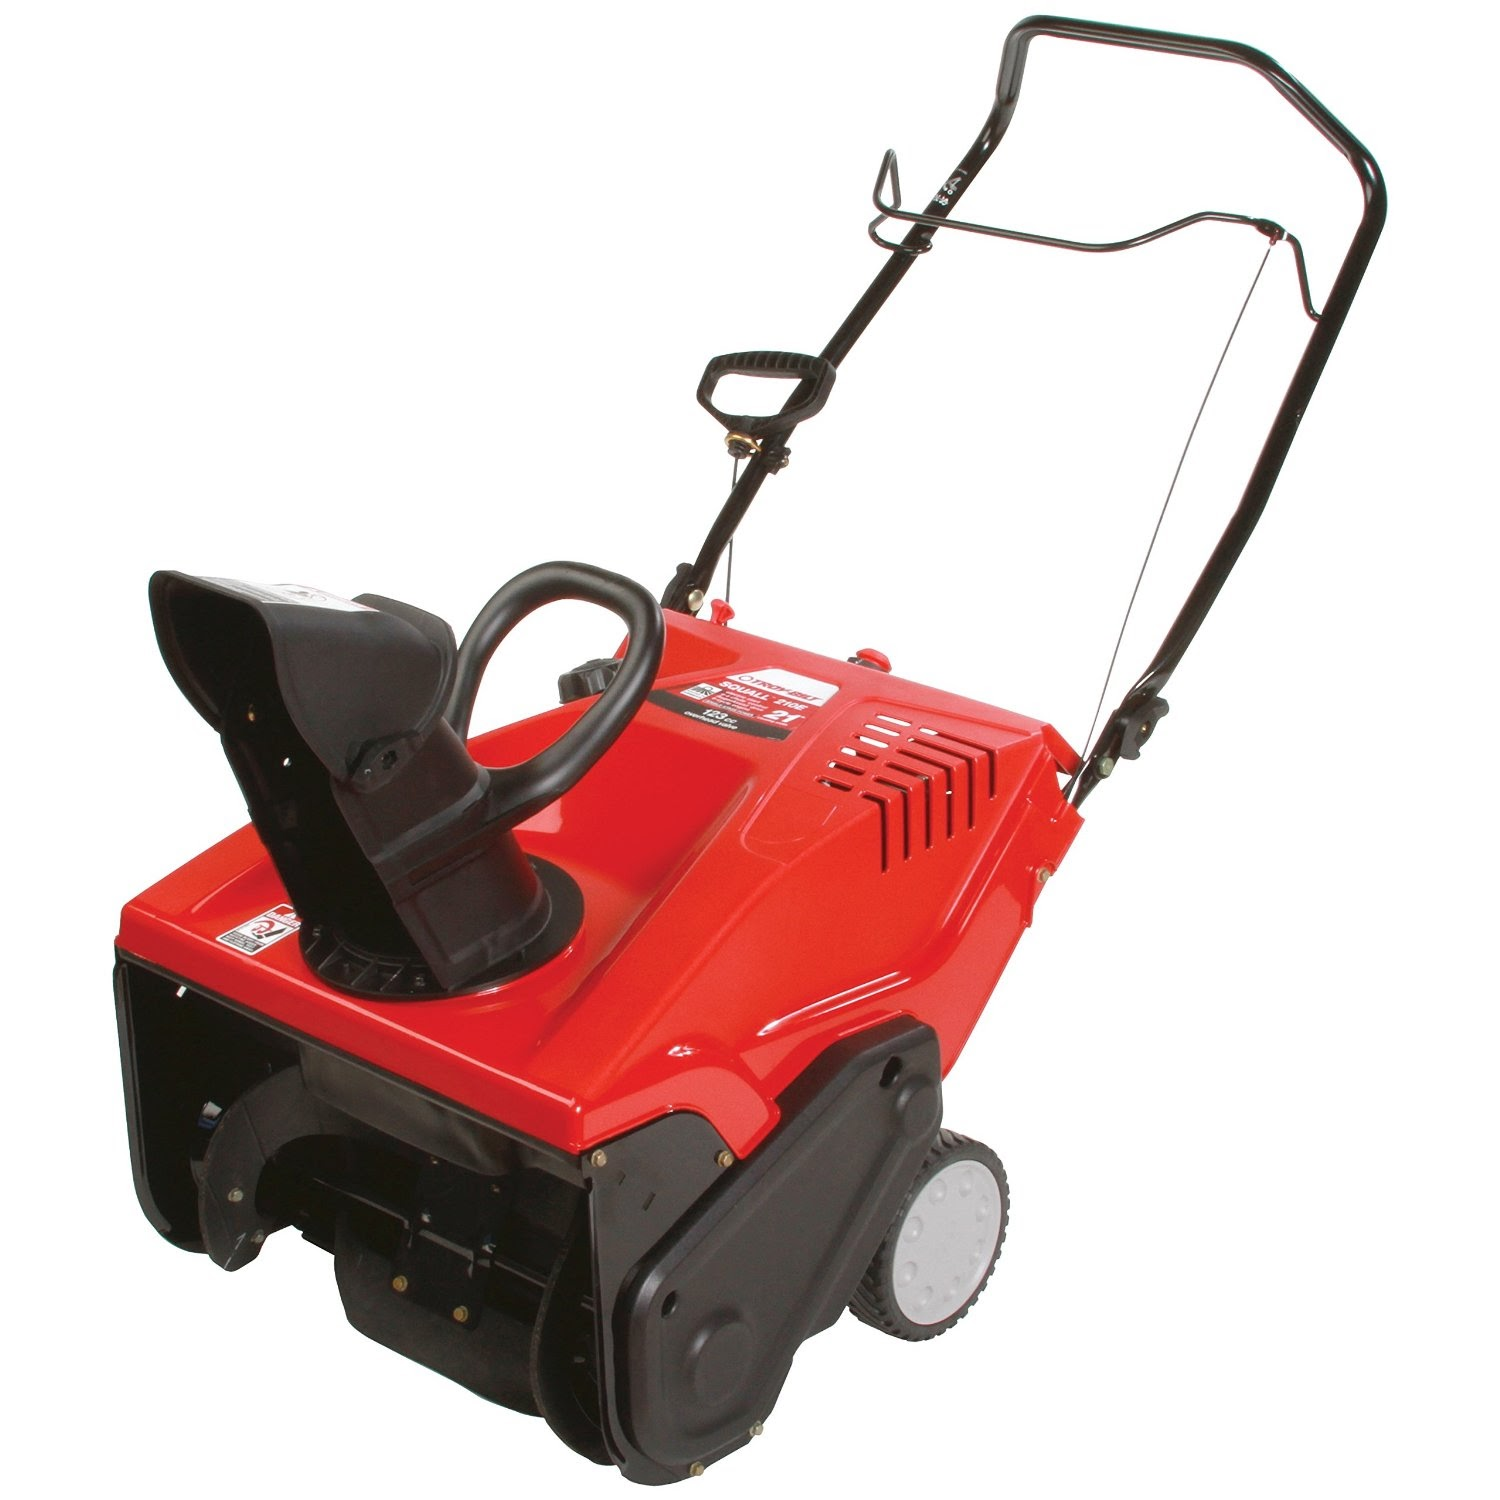 Snow Blower Comparisons >> Home, Garden & More...: Troy-Bilt Squall 210E 123cc 4-cycle Electric Start Single-Stage Snow ...